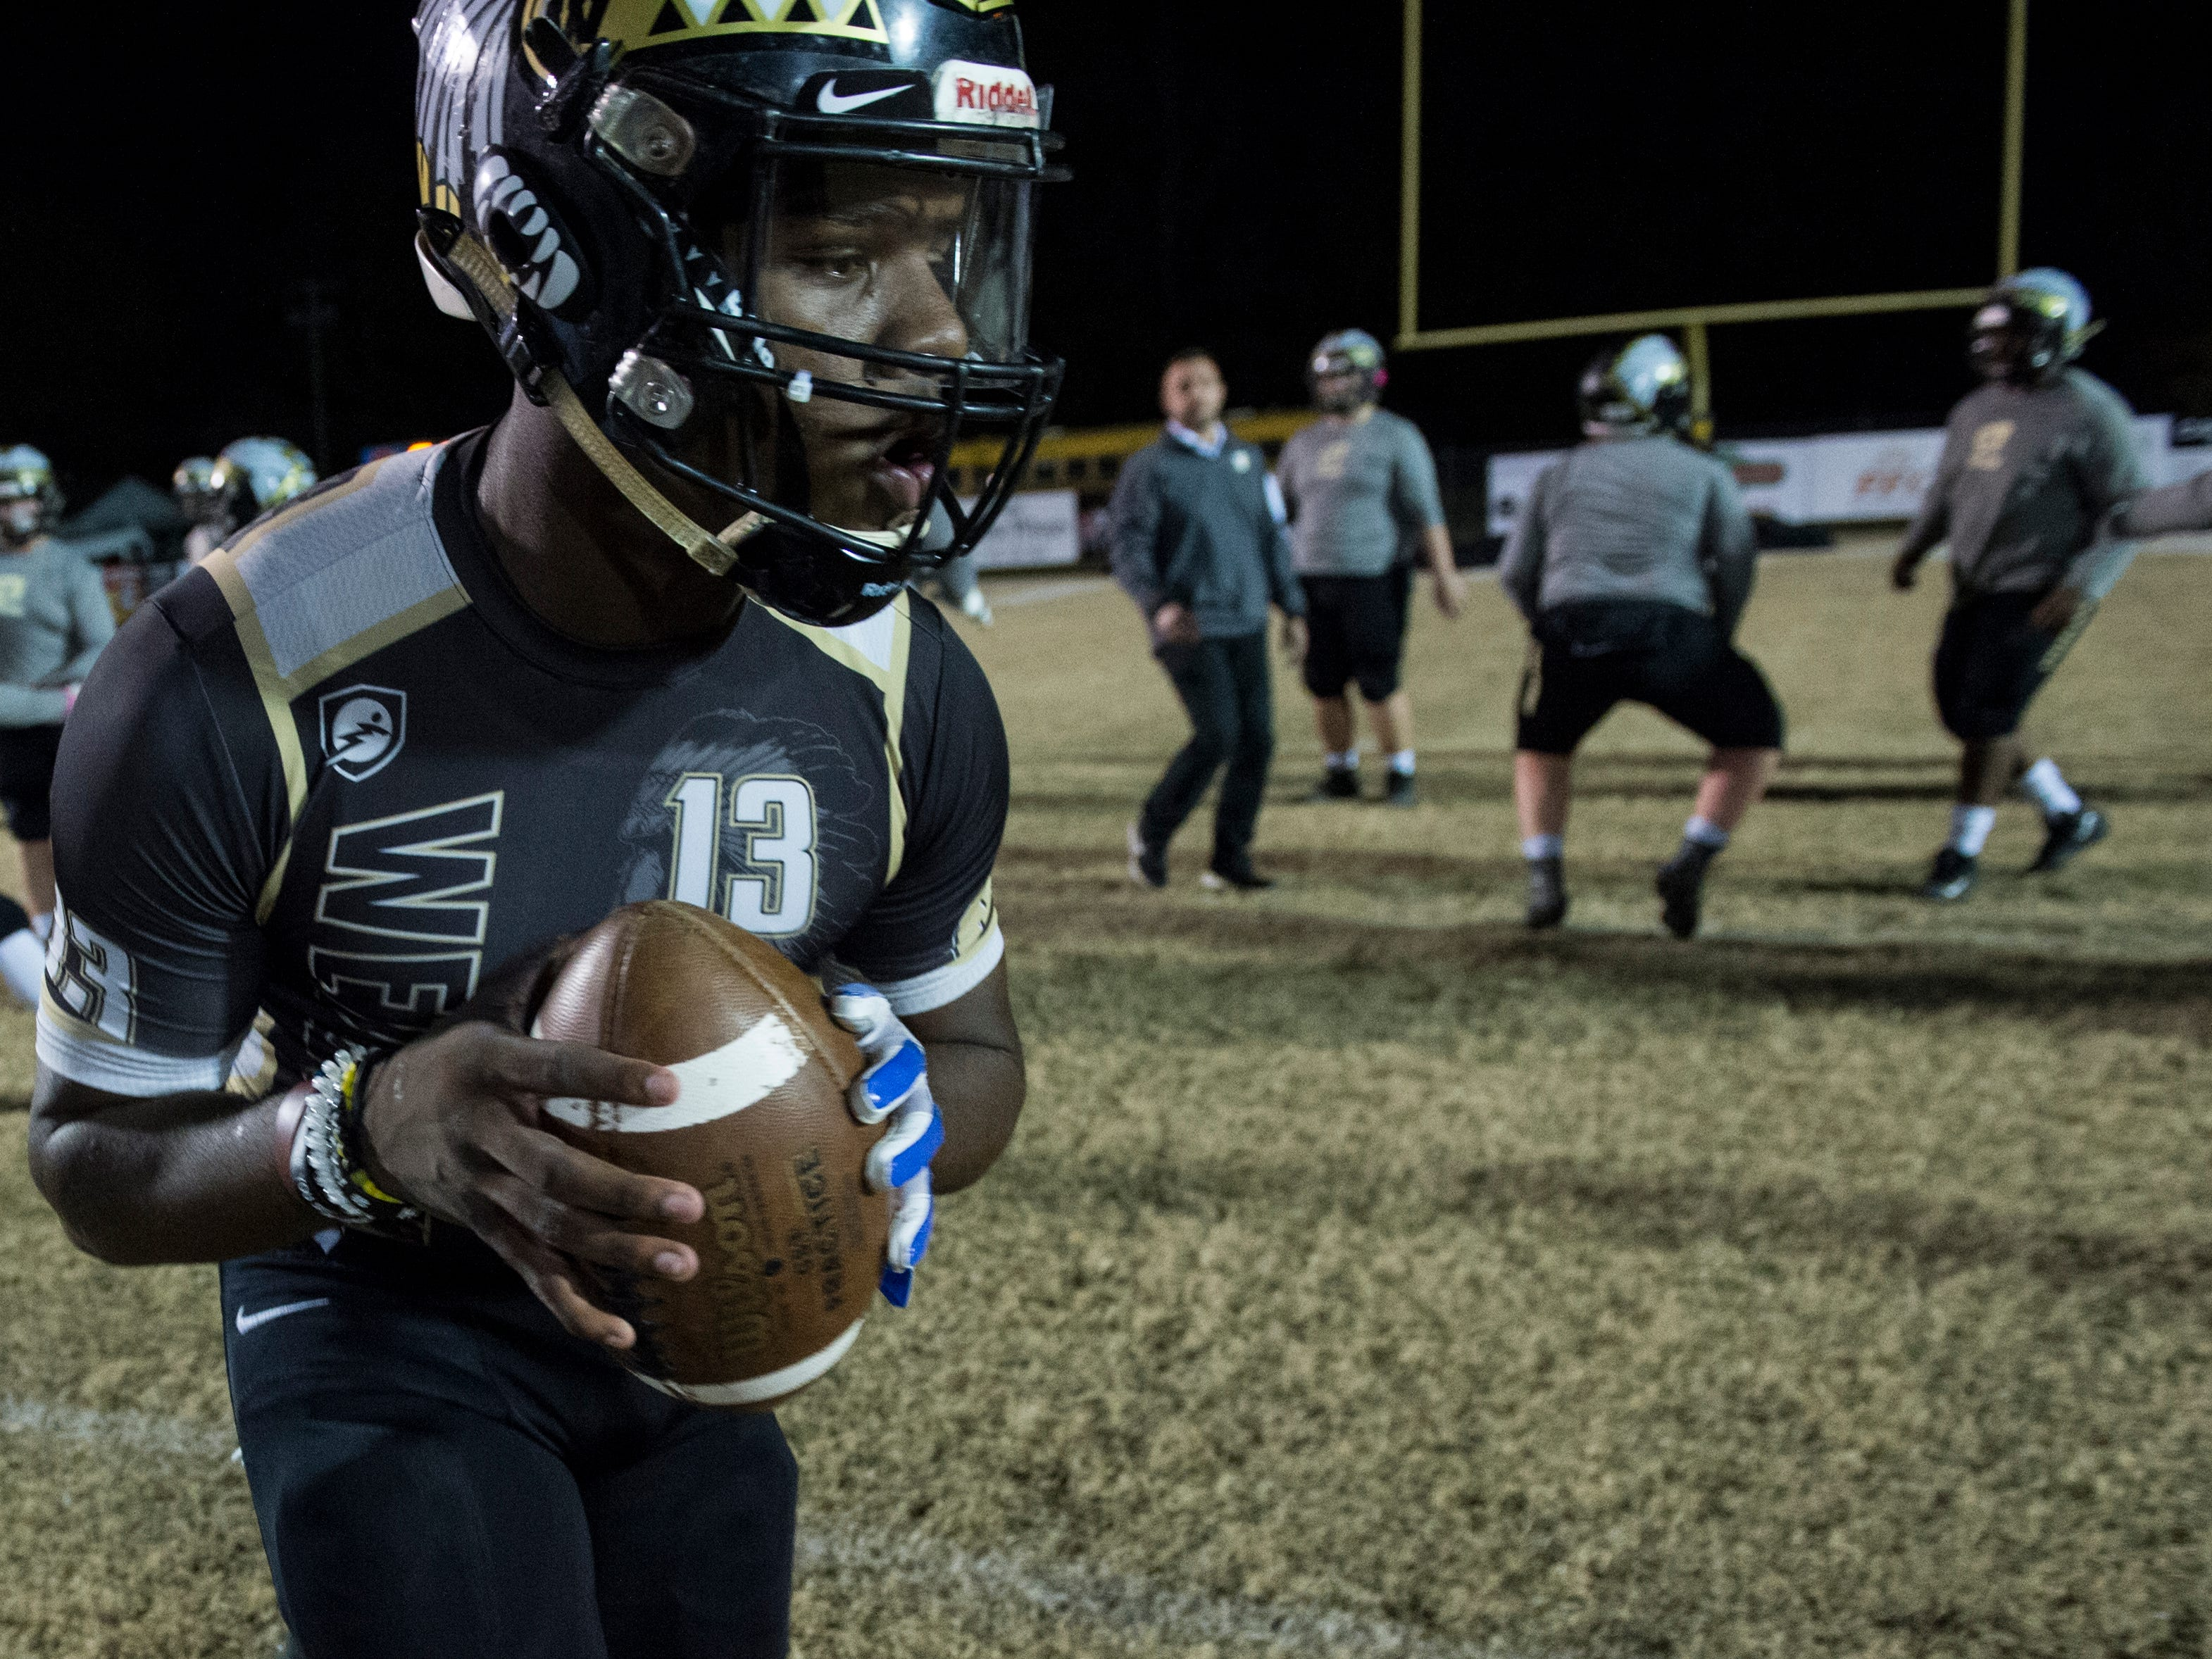 Wetumpka's Tyquan Rawls runs a play during warm ups at Hohenberg Field in Wetumpka, Ala., on Friday, Nov. 30, 2018. Wetumpka leads Saraland 14-8 at halftime.